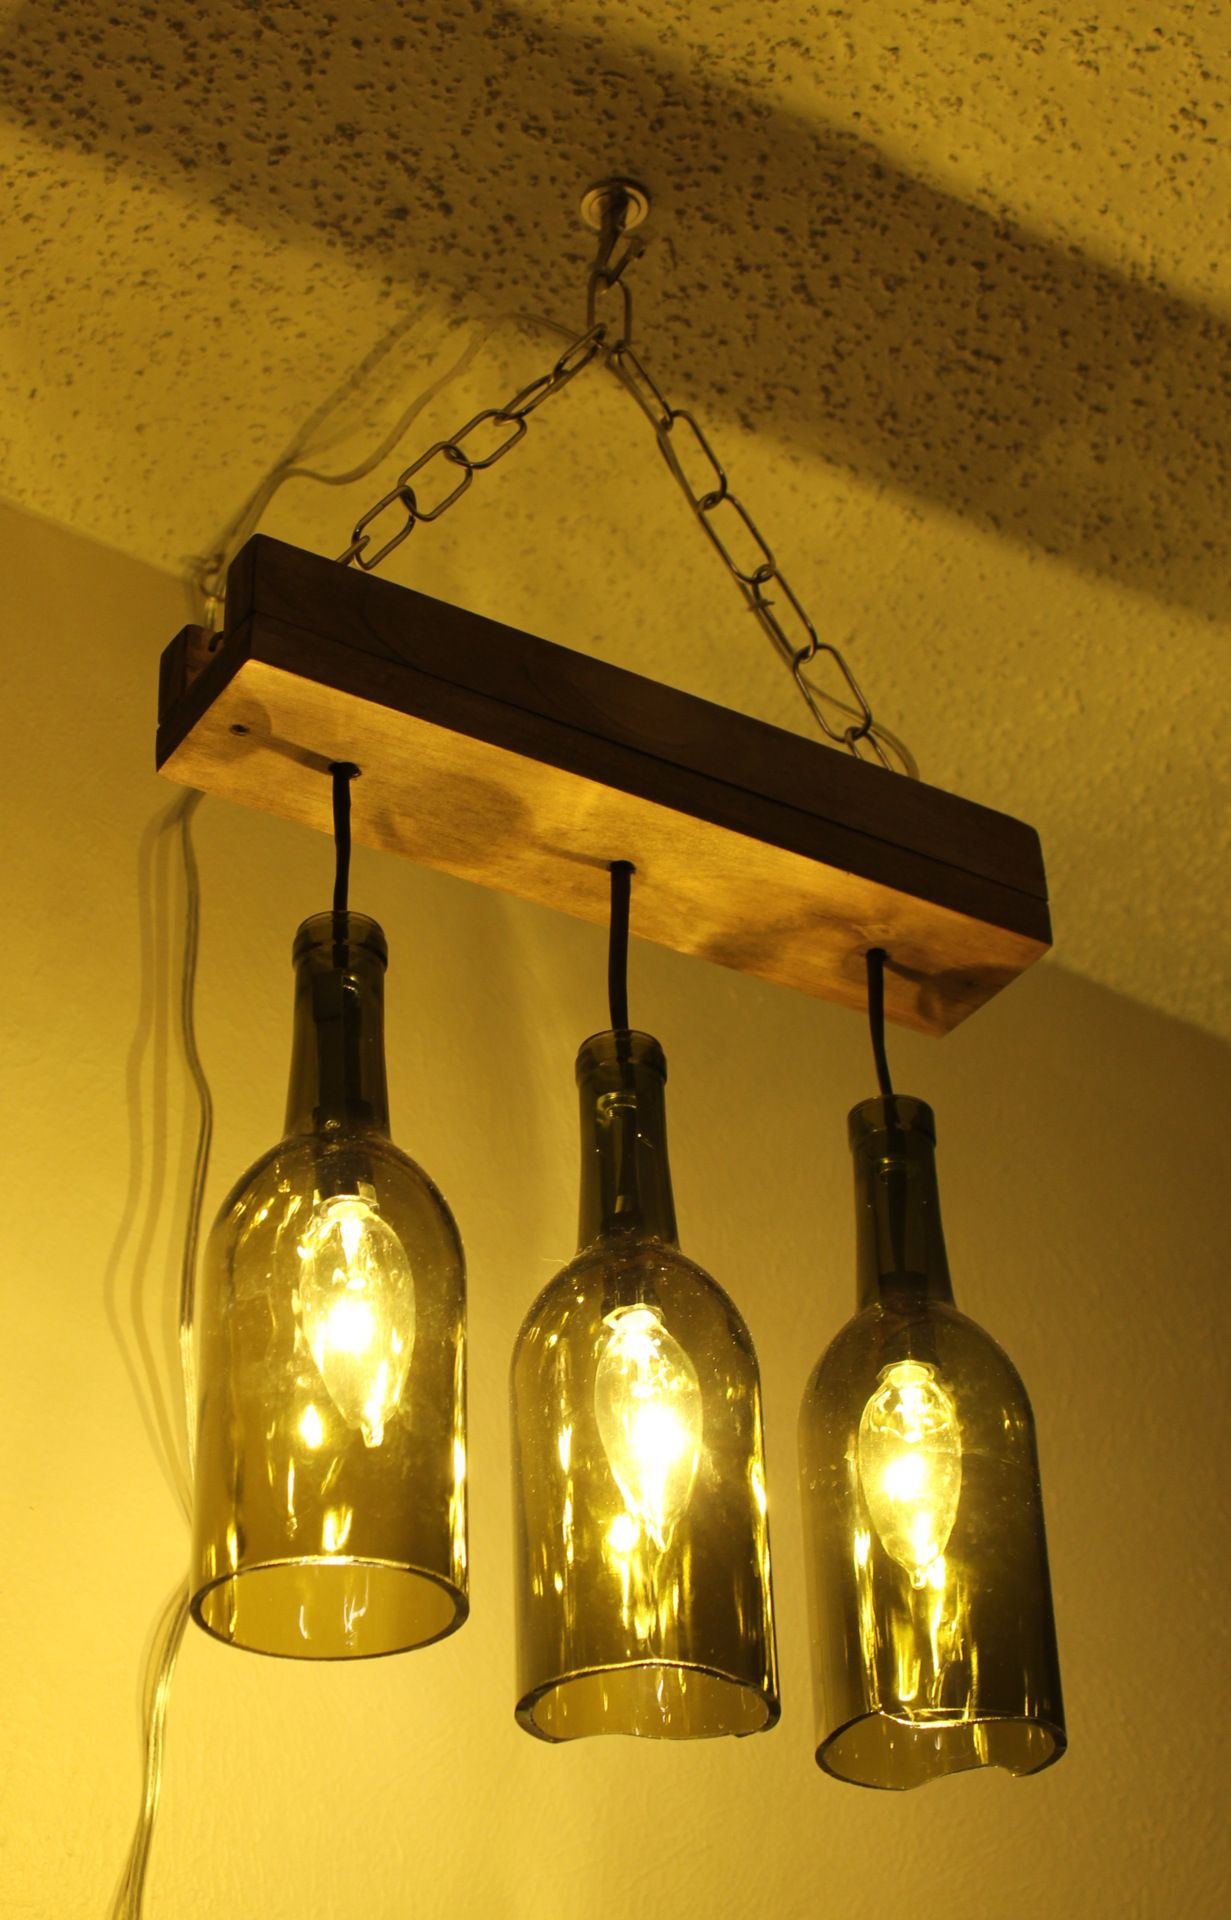 wine bottle ideas Lighting Ideas Pinterest